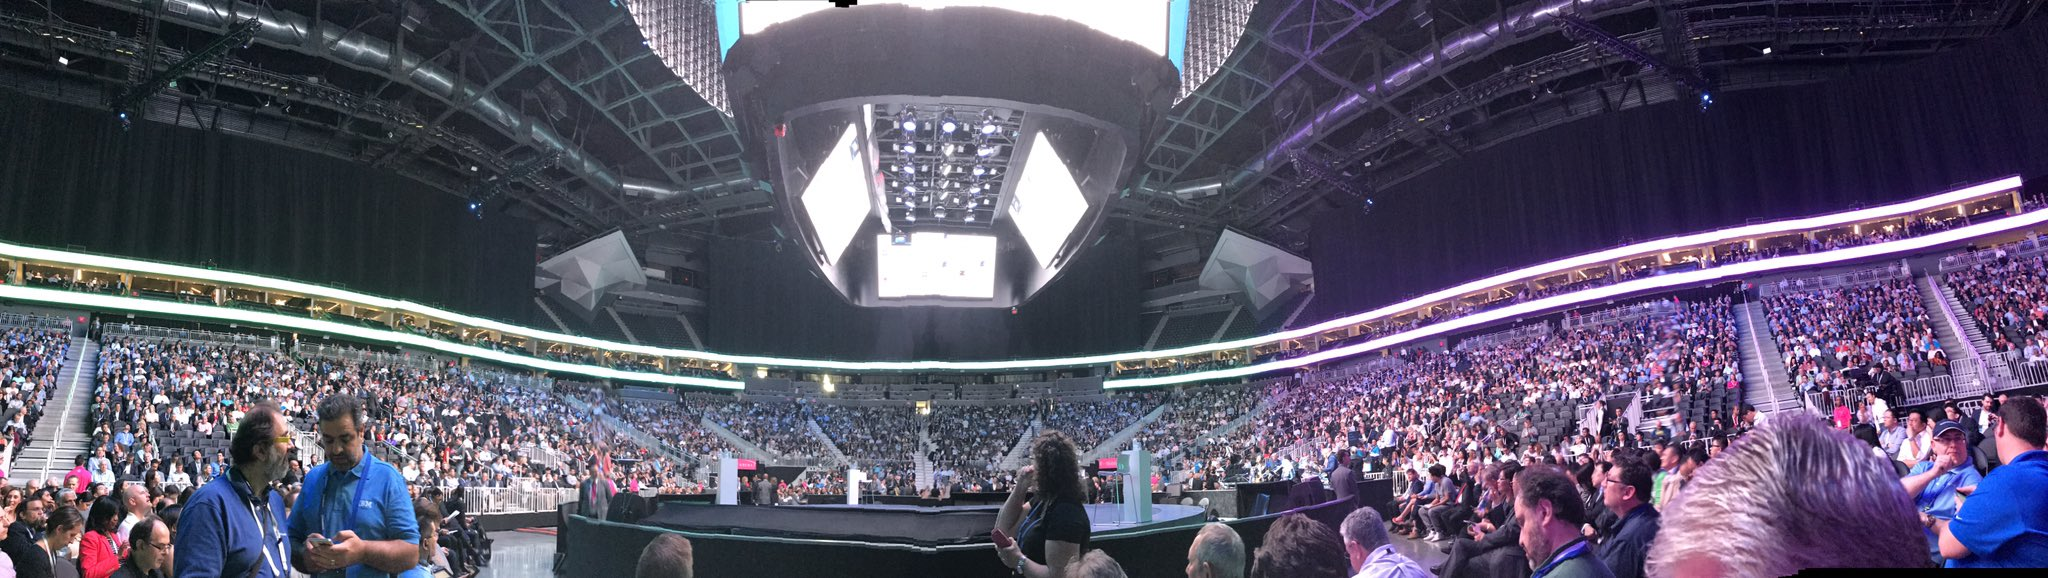 Not your Dads IBM!  Nirvana playing for CEO of @IBM Ginni's keynote at the @TMobile arena....  #ibmwow #WatsonMarketing https://t.co/ixwLtd594X